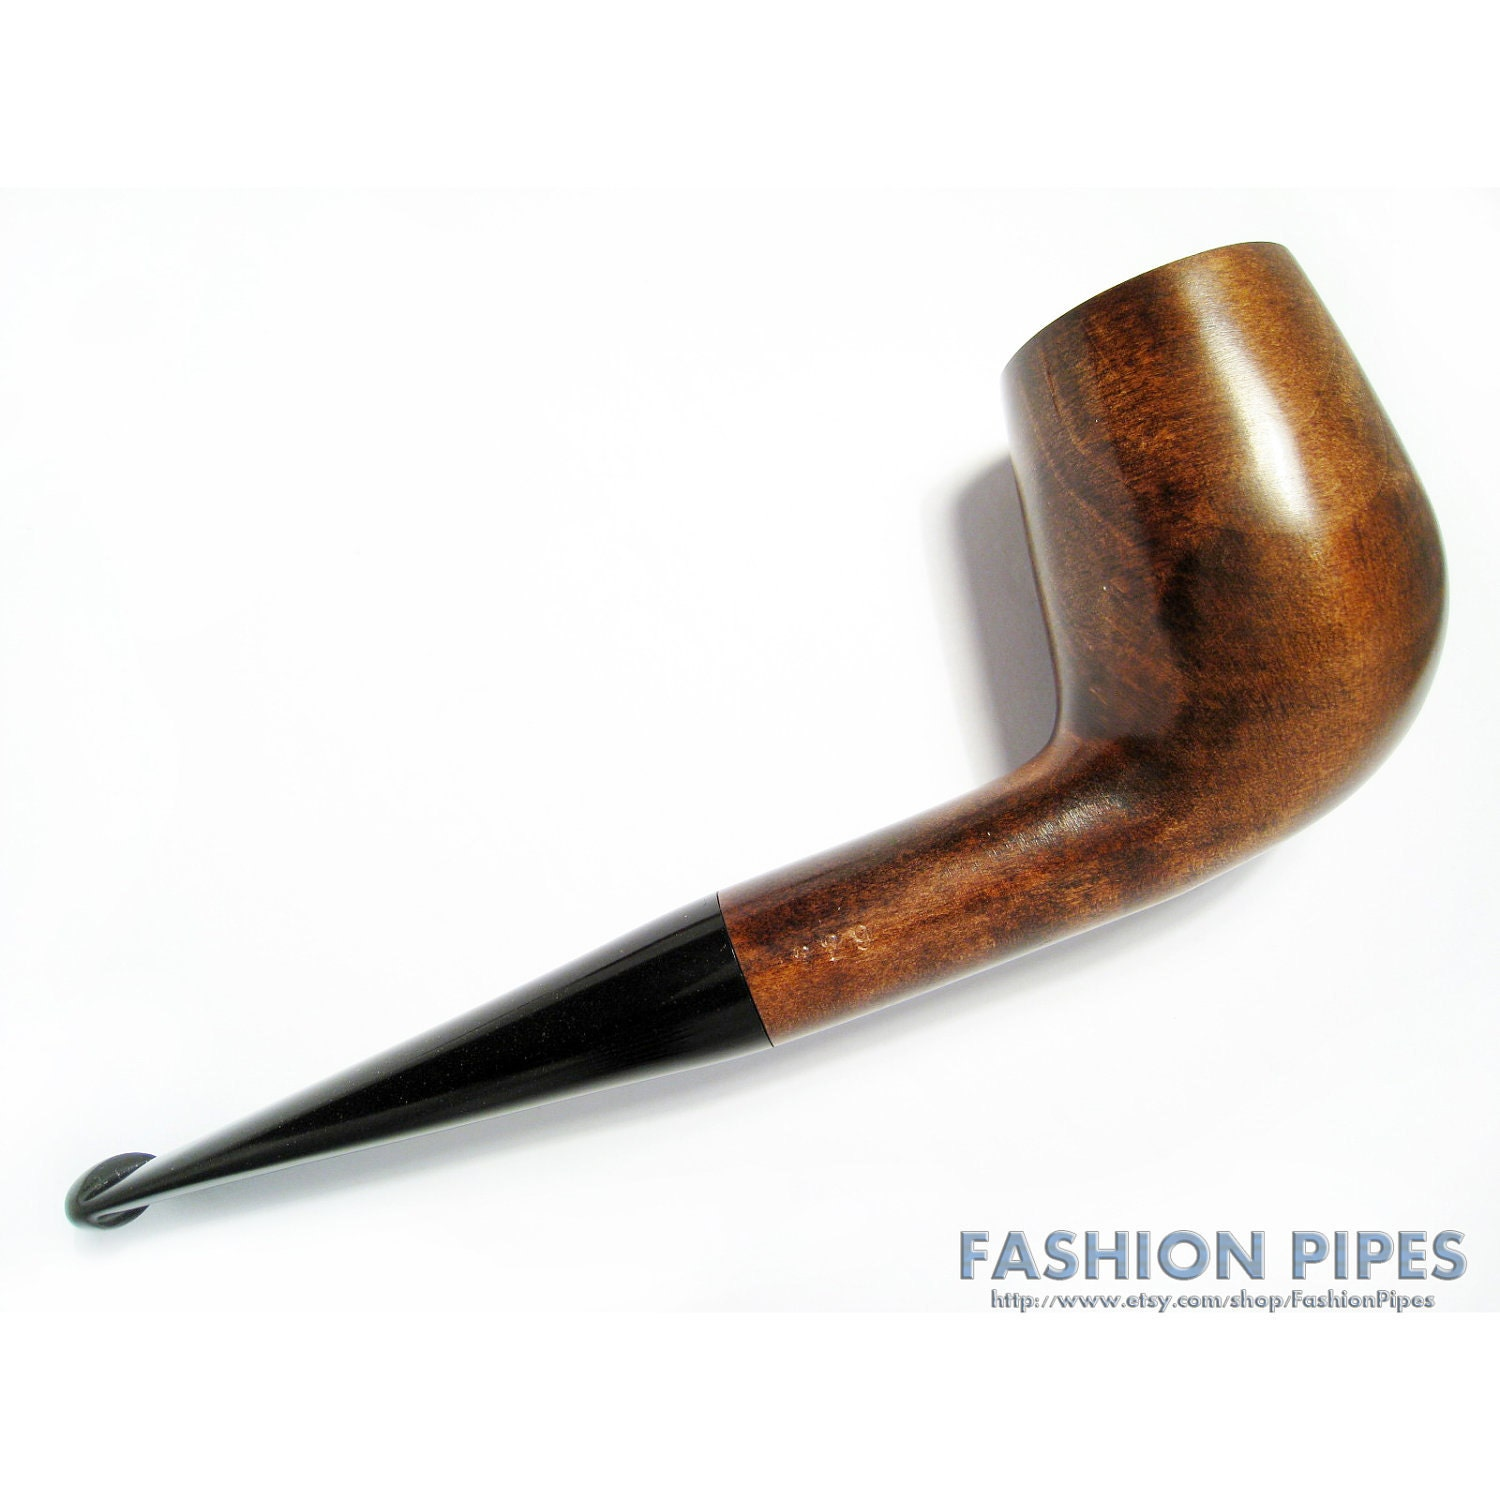 Wooden pipe tobacco pipe pipes zulu 5 3 inches weight 1oz for What pipes to use for plumbing